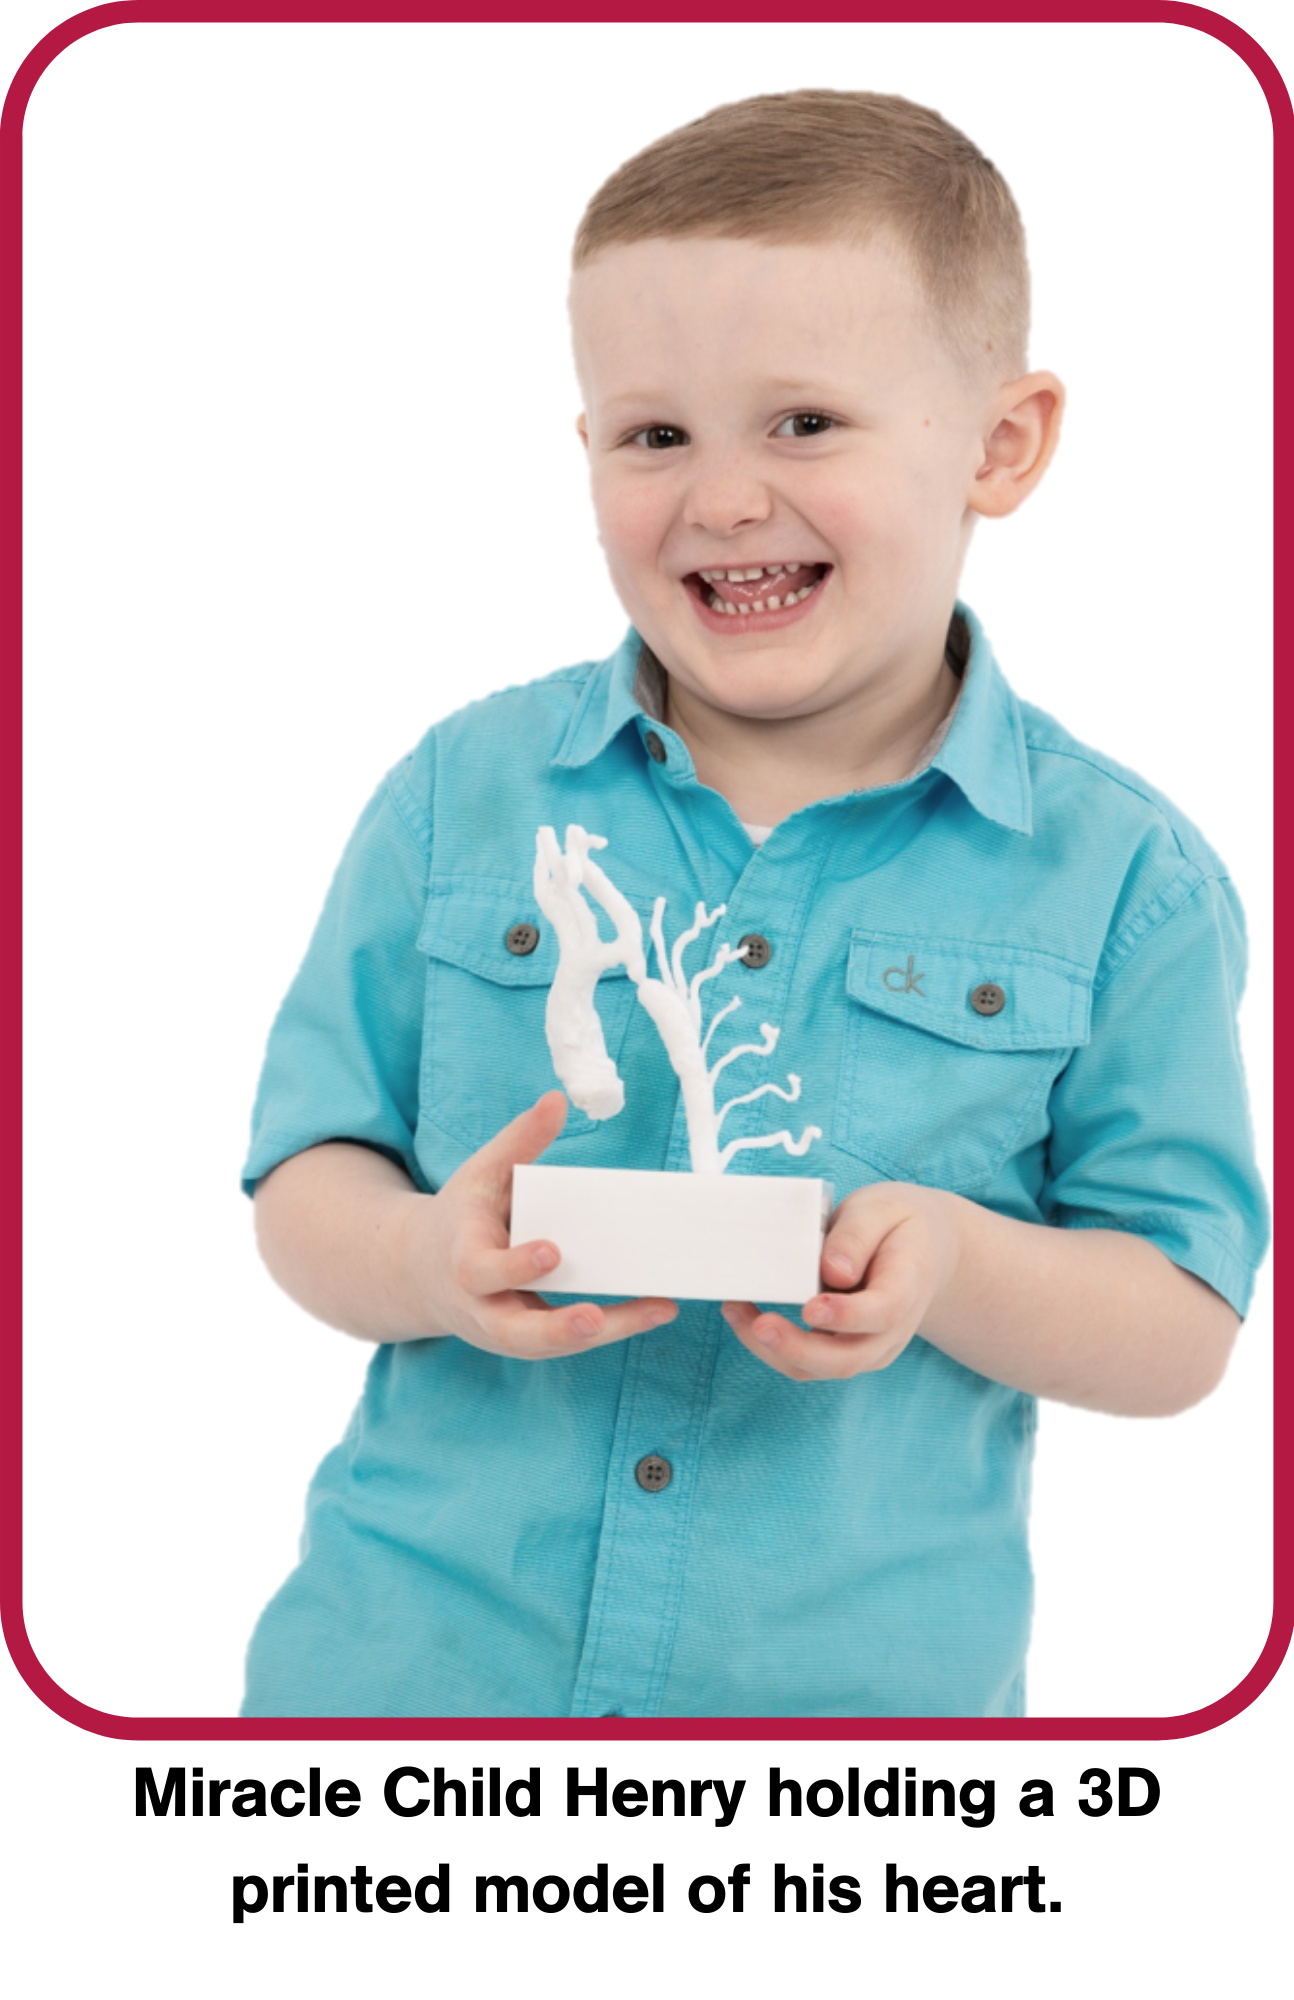 Miracle Child Henry holding a 3D model of his heart.